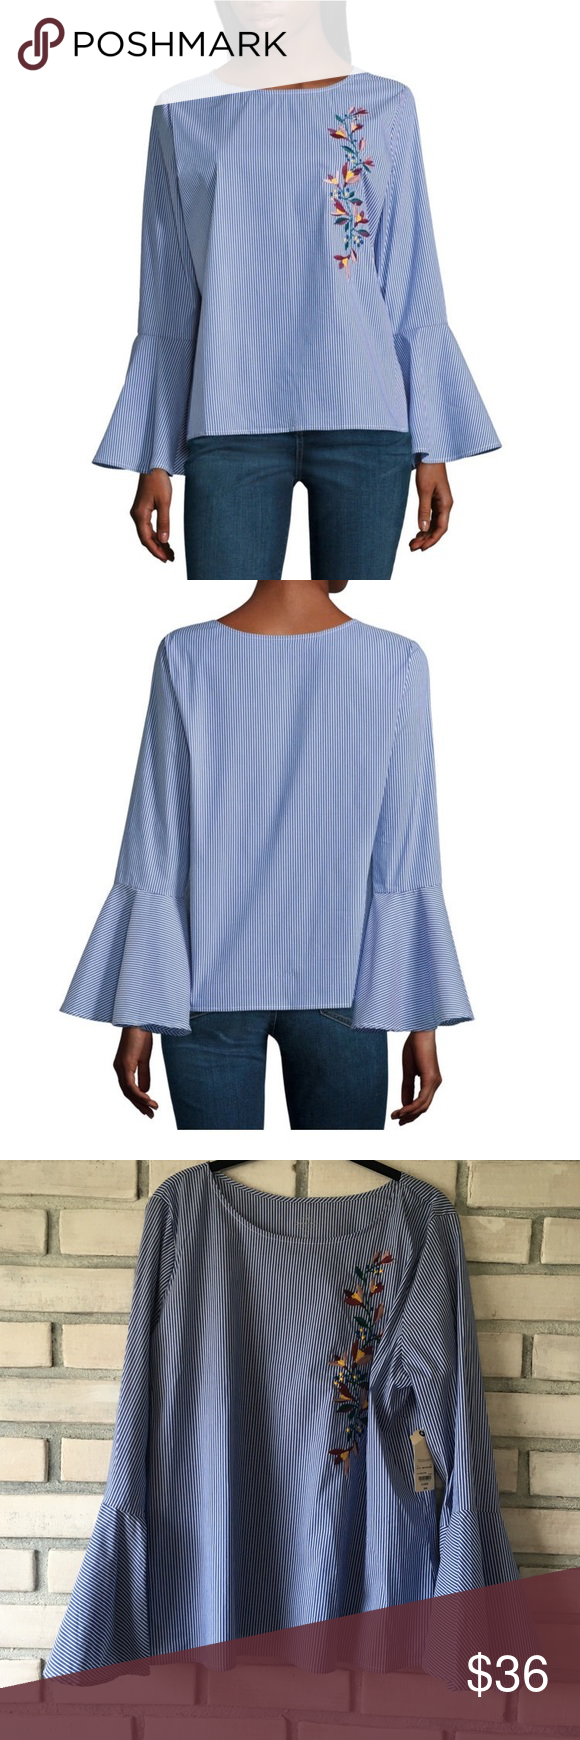 """St Johns Bay Bell Sleeved Striped Top XL 23"""" armpit to armpit, 25"""" Long, Brand new with tags.  Crisp colors and fabric, has just enough stretch to be comfy but not lose its shape or look worn through the day.  Bell sleeves. St. John's Bay Tops"""